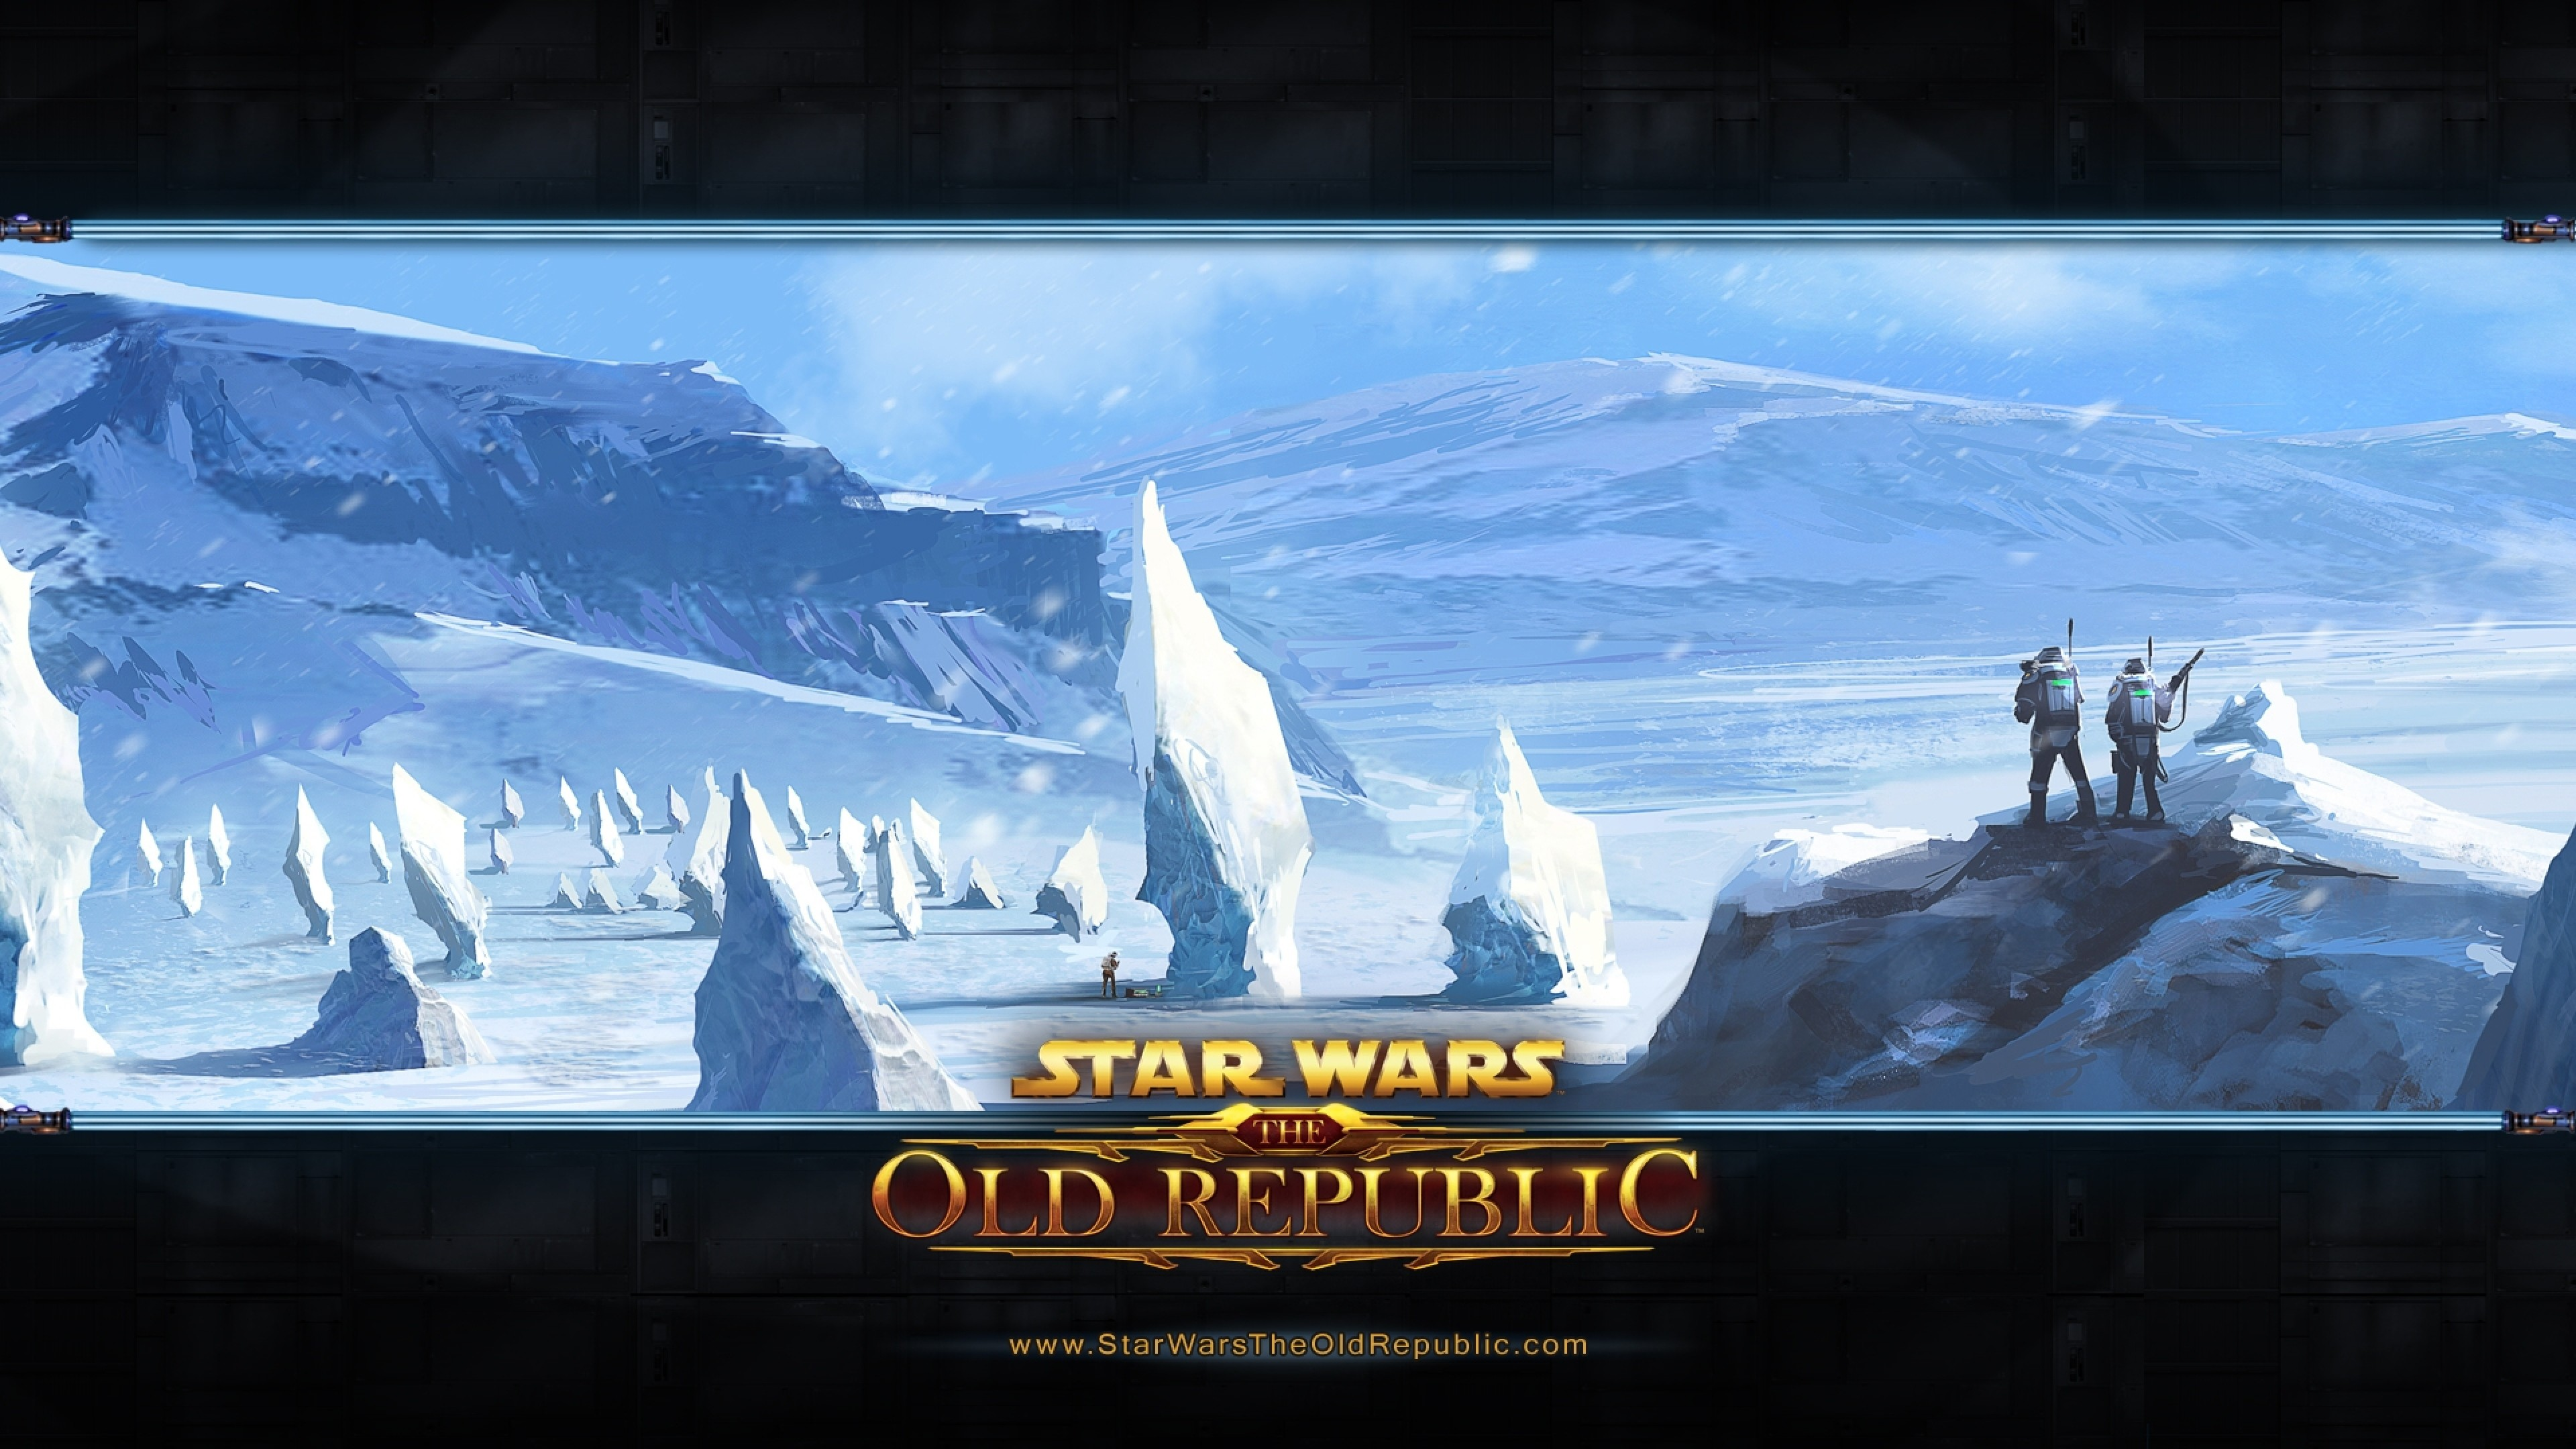 3840x2160  Wallpaper star wars the old republic, cold, snow, mountains